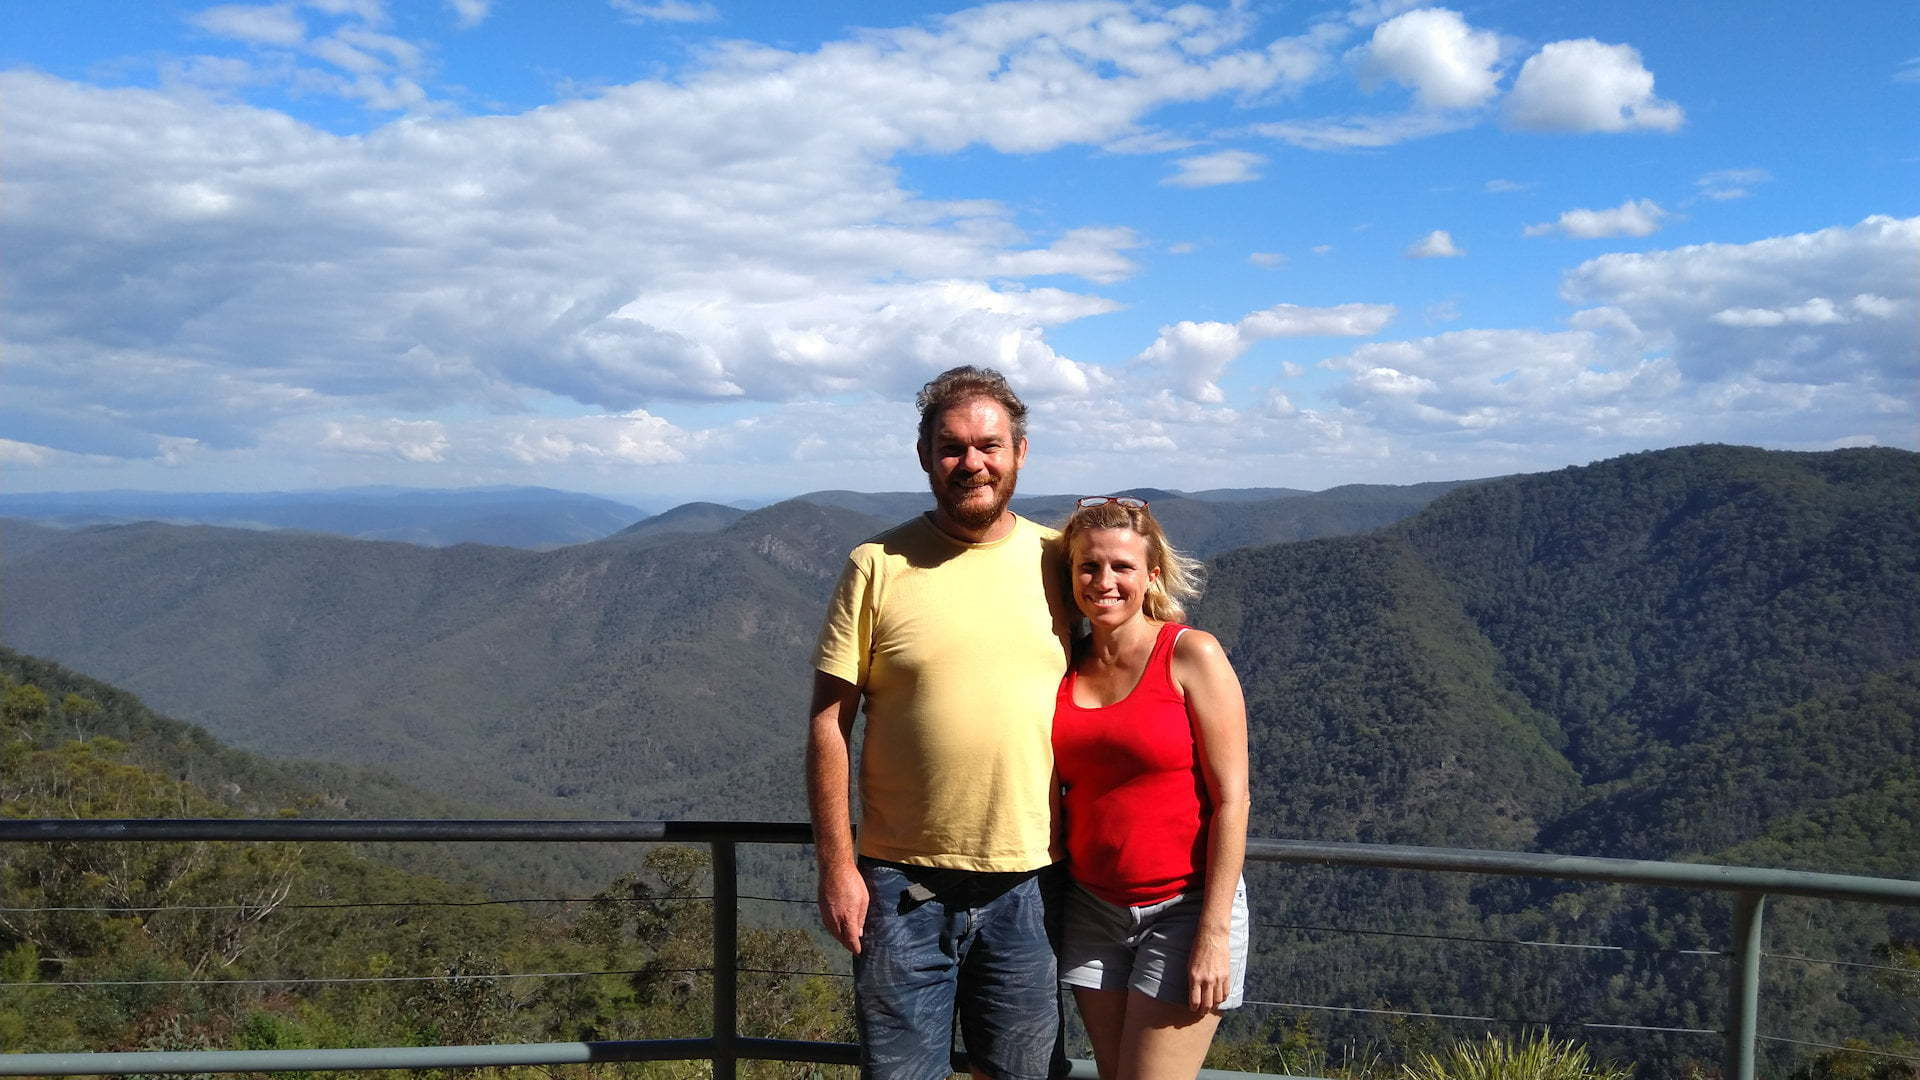 Two people standing at the lookout of mountains and valleys, taken at Raspberry Lookout in the Gibraltar Ranges National Park